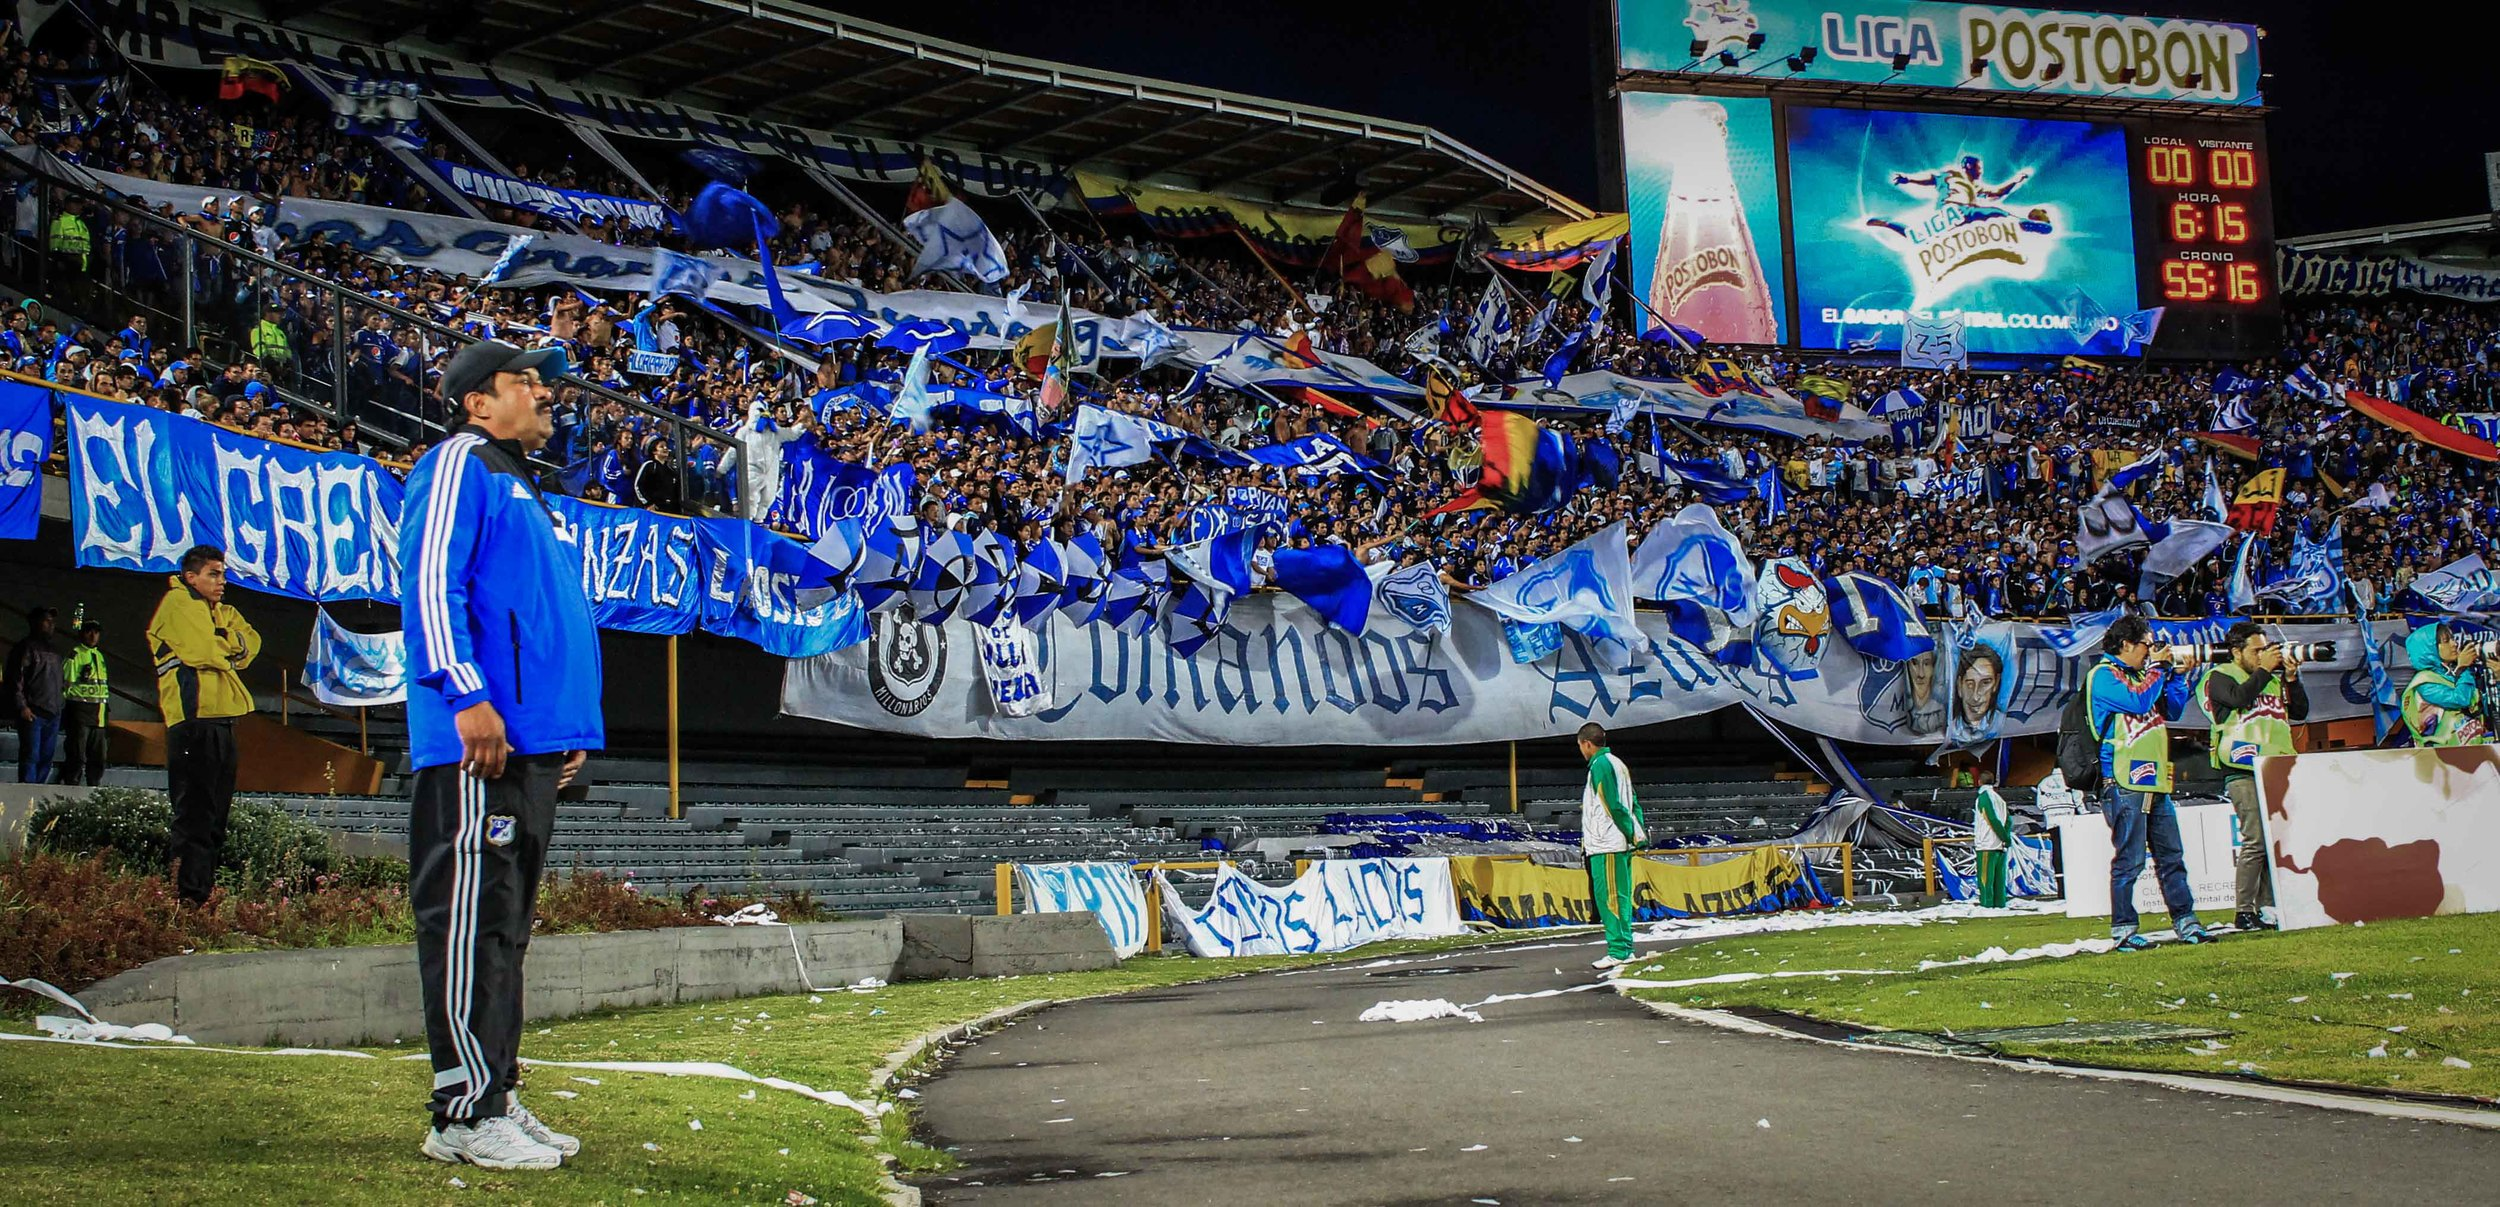 The other famed Millos' barra brava, and the first-ever in Colombia, Comandos Azules.